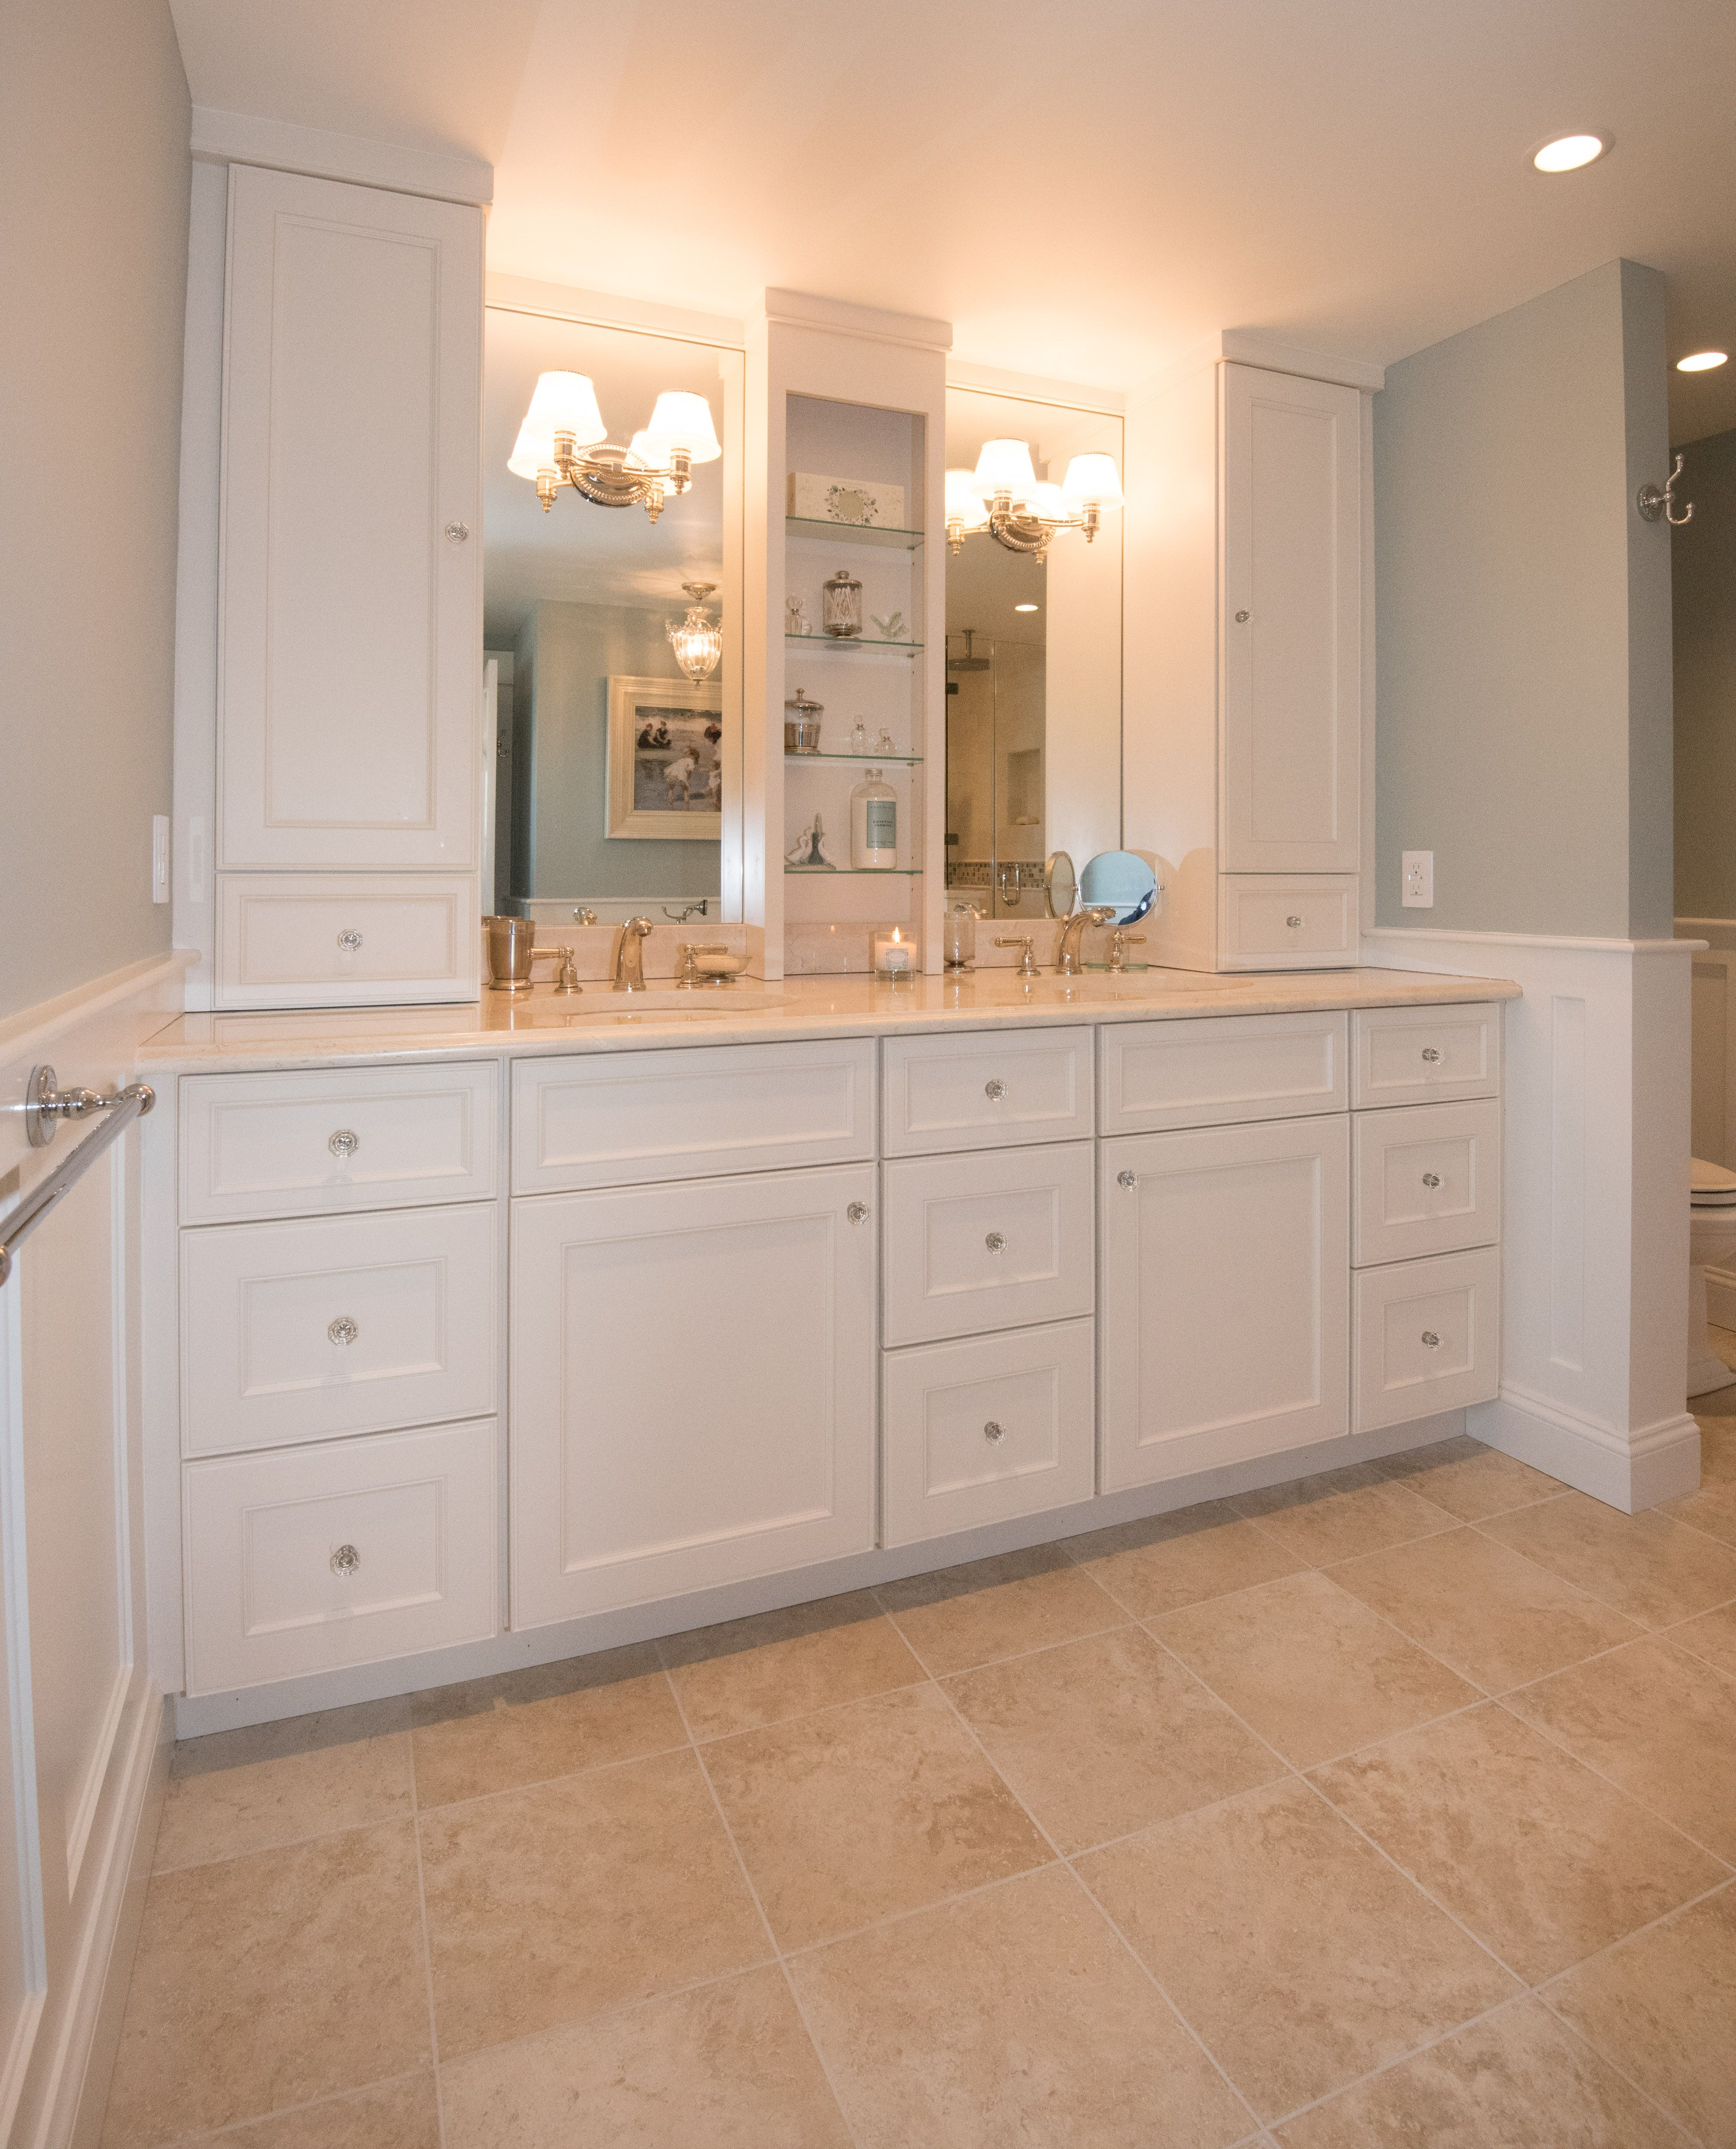 This Double Vanity Has Truly Maximized Storage With Tall Linen Cabinets Flanking The Mirrors And Matching Cabi Unusual Bathrooms Bathroom Vanity Girl Bathrooms